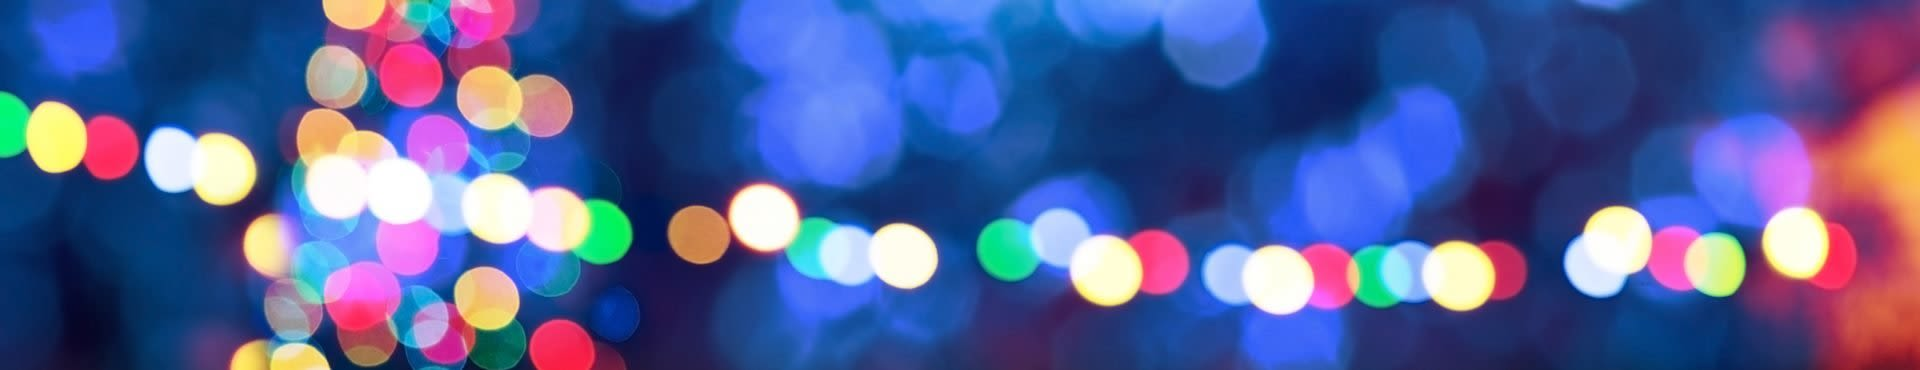 Shine Lawyers | Blurred Christmas lights | Shine Lawyers